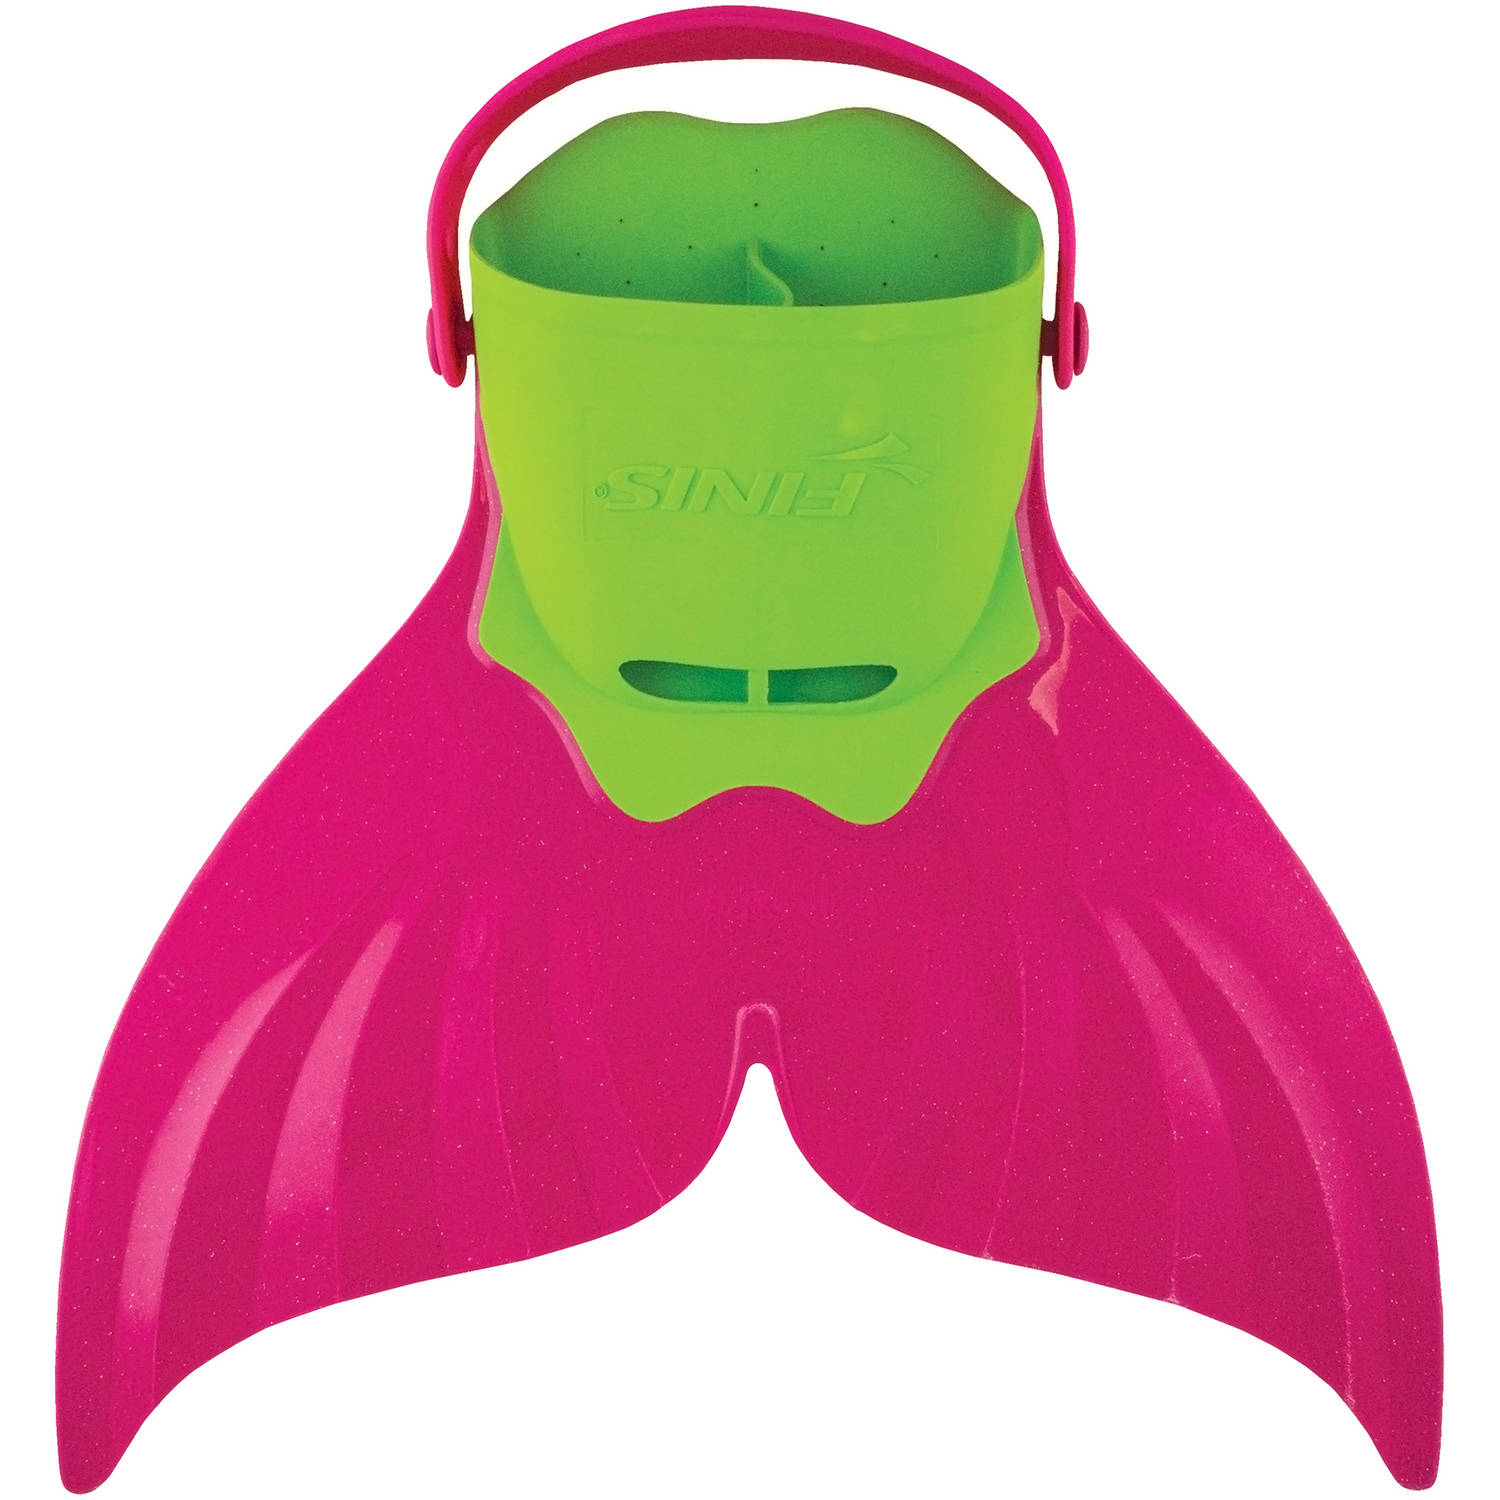 FINIS Children's Mermaid Fin in Light Green and Pink